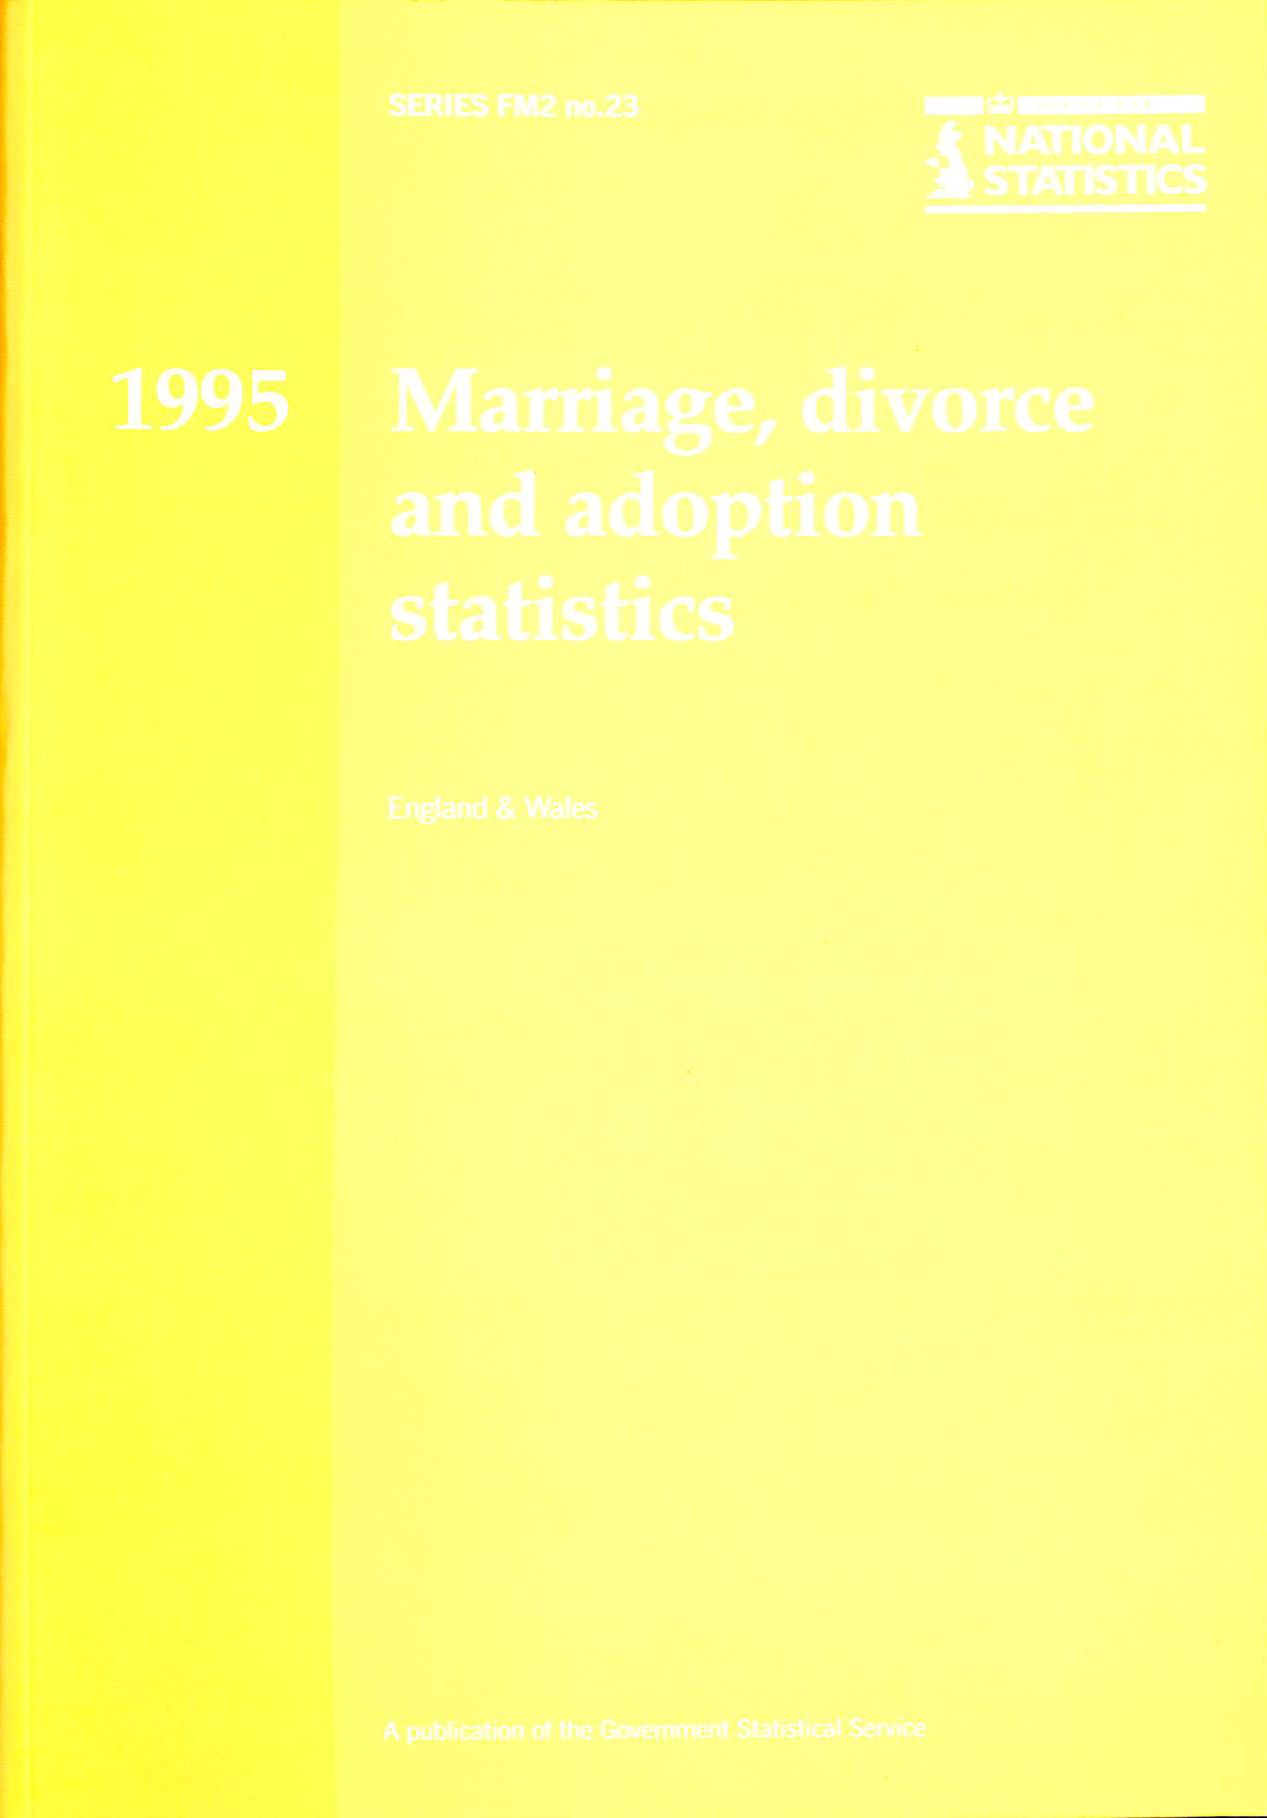 Image for Marriage, Divorce and Adoption Statistics 1995: Review of the Registrar General on Marriages, Divorces and Adoptions in England and Wales (Series FM2)